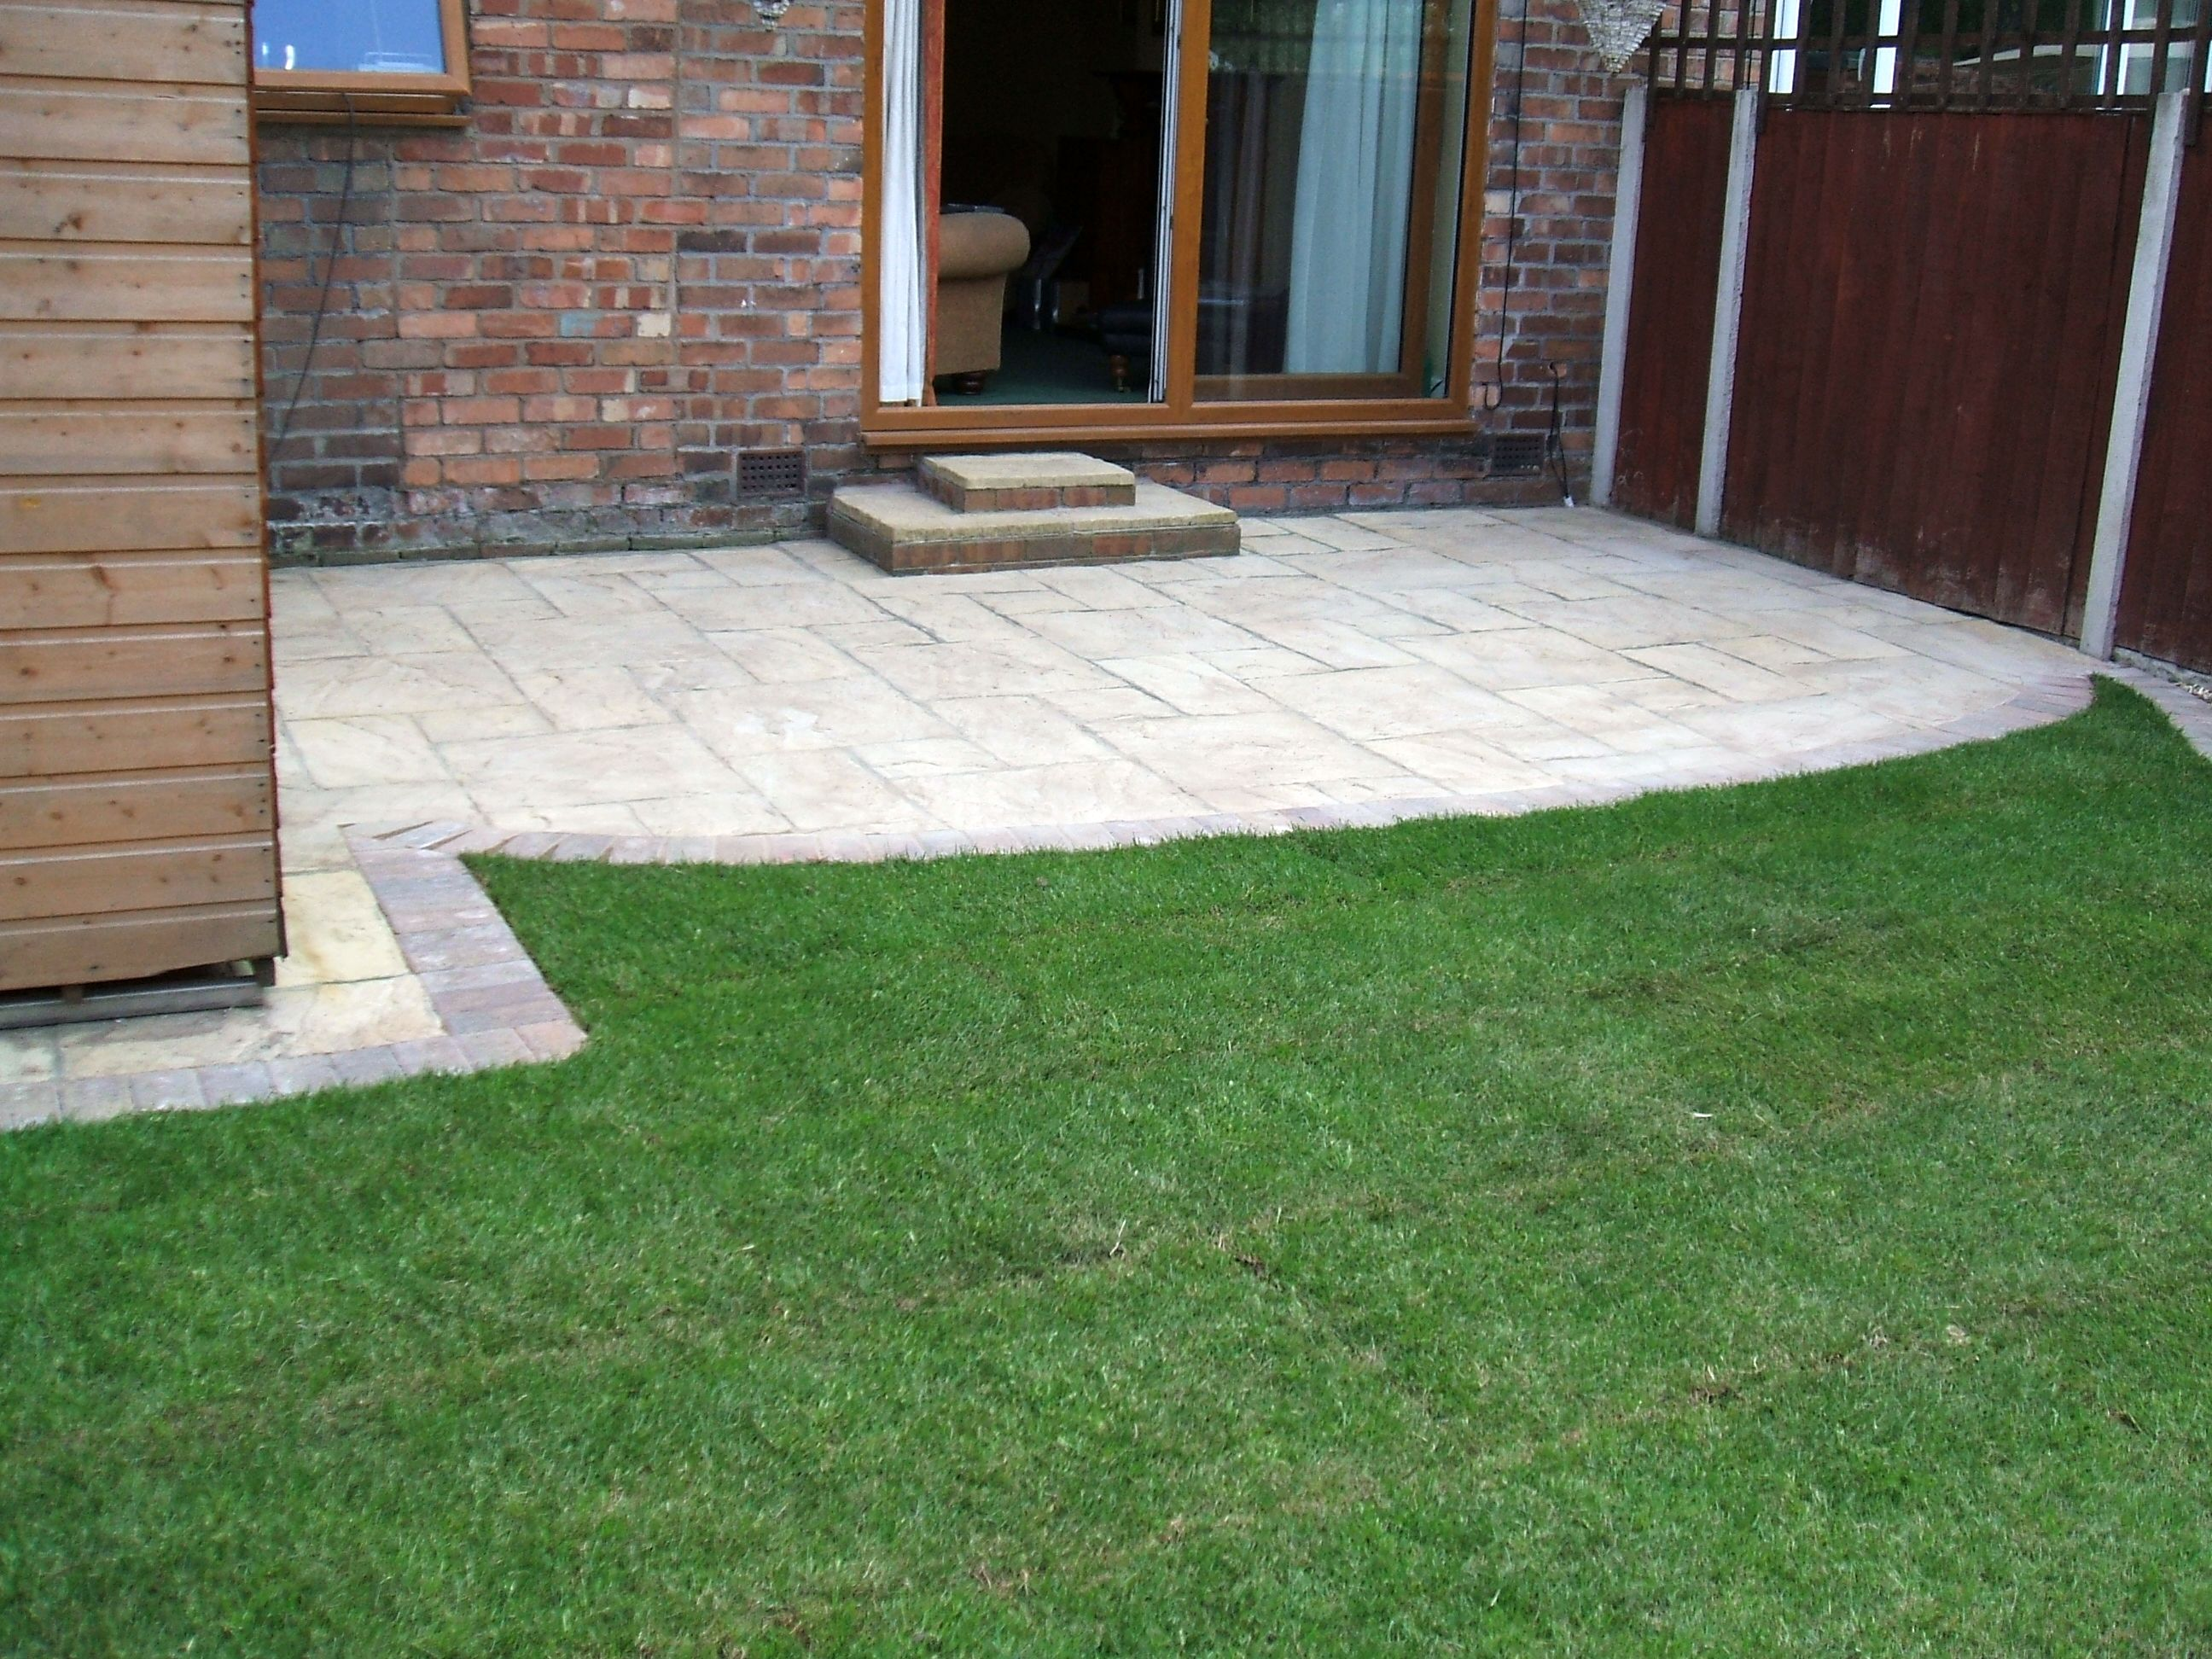 Patios, Driveways, Decking, Lawns, Decorative Walling, Fencing, Planting,  Stone Paving, Water Features, Drainage And Lighting